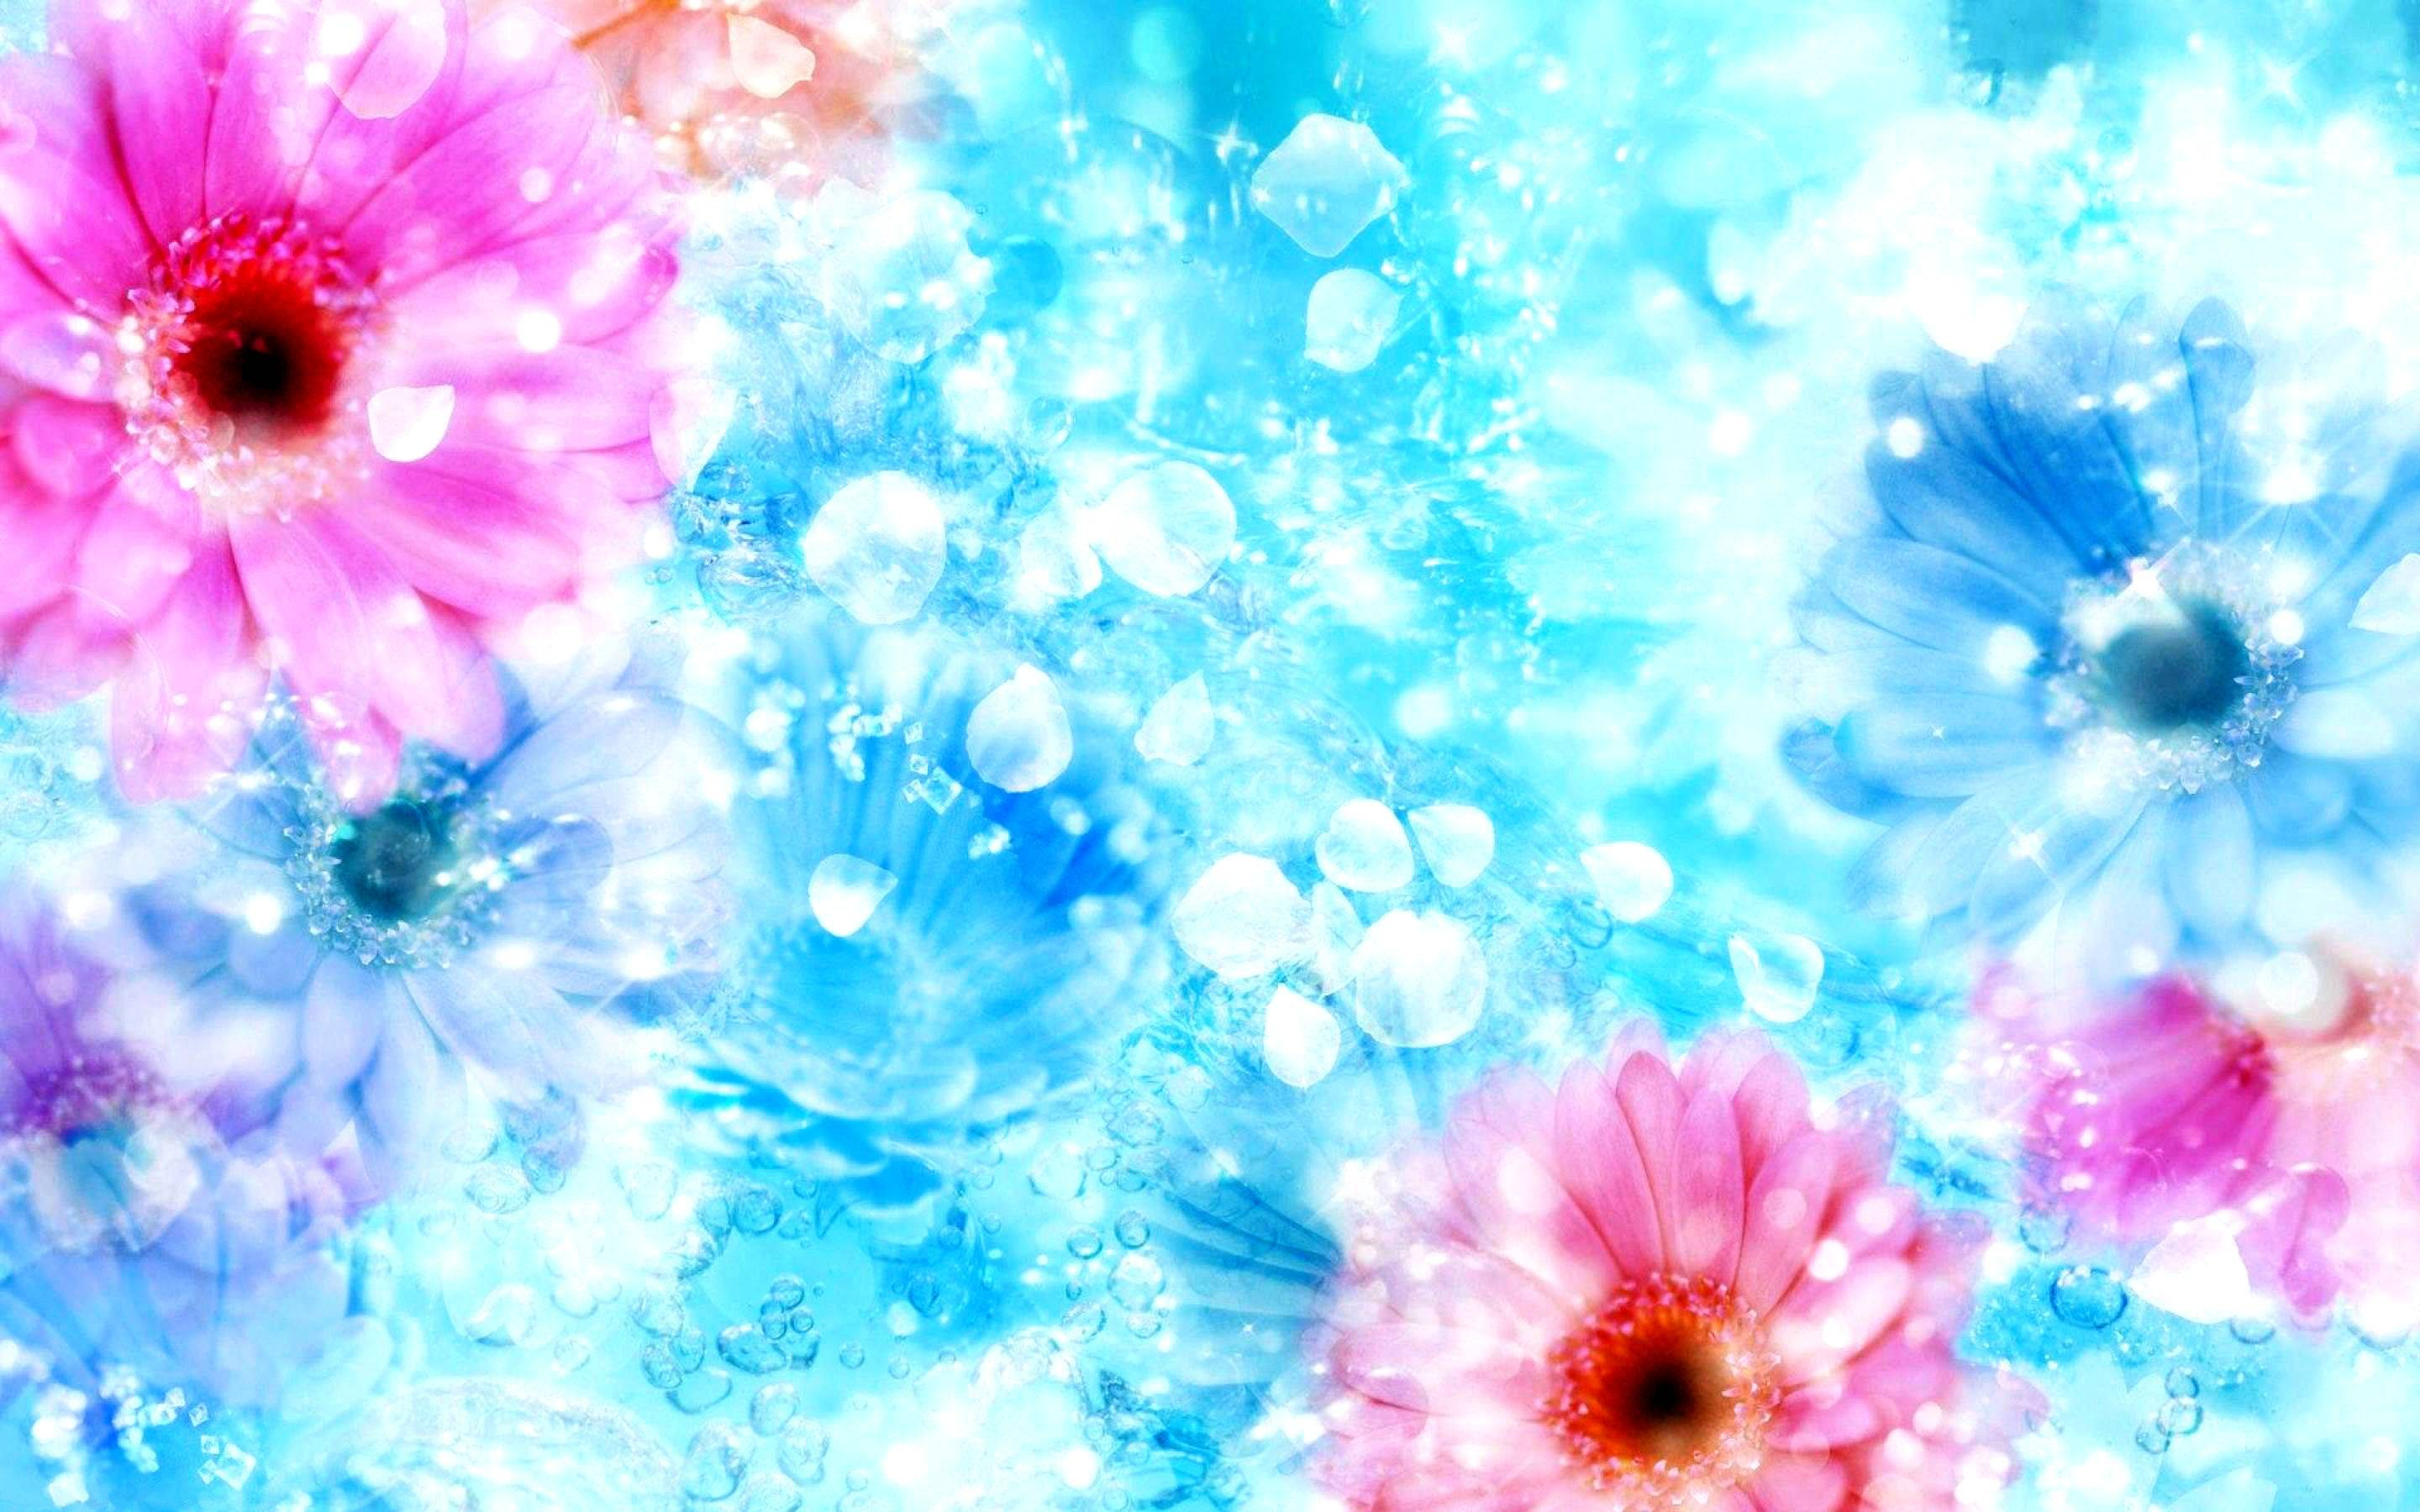 pastel desktop wallpaper - photo #40